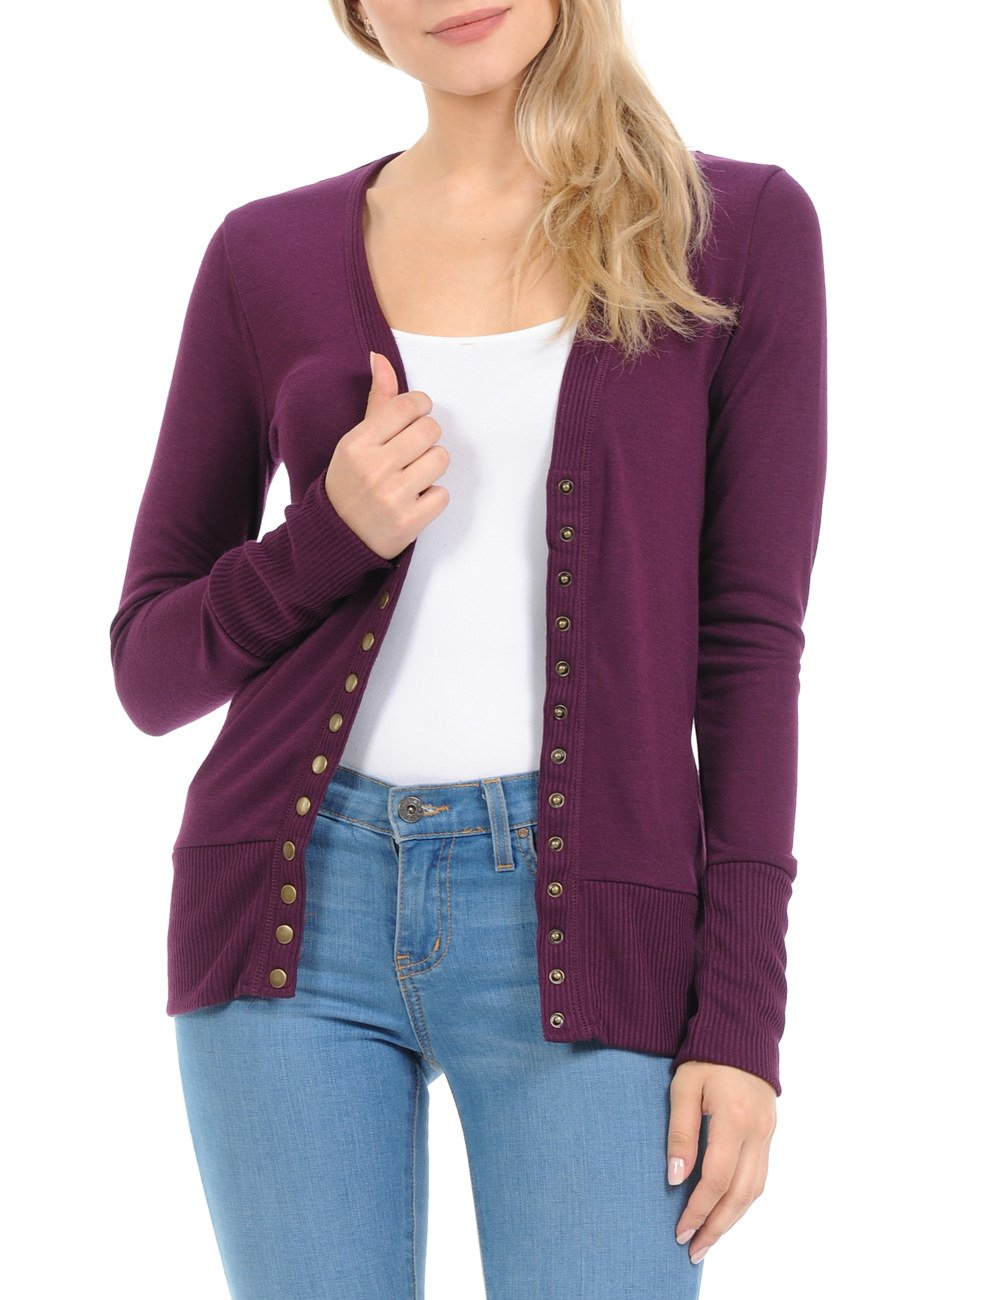 Women's Snap Button Sweater Cardigan with Ribbed Detail, Plum, Large